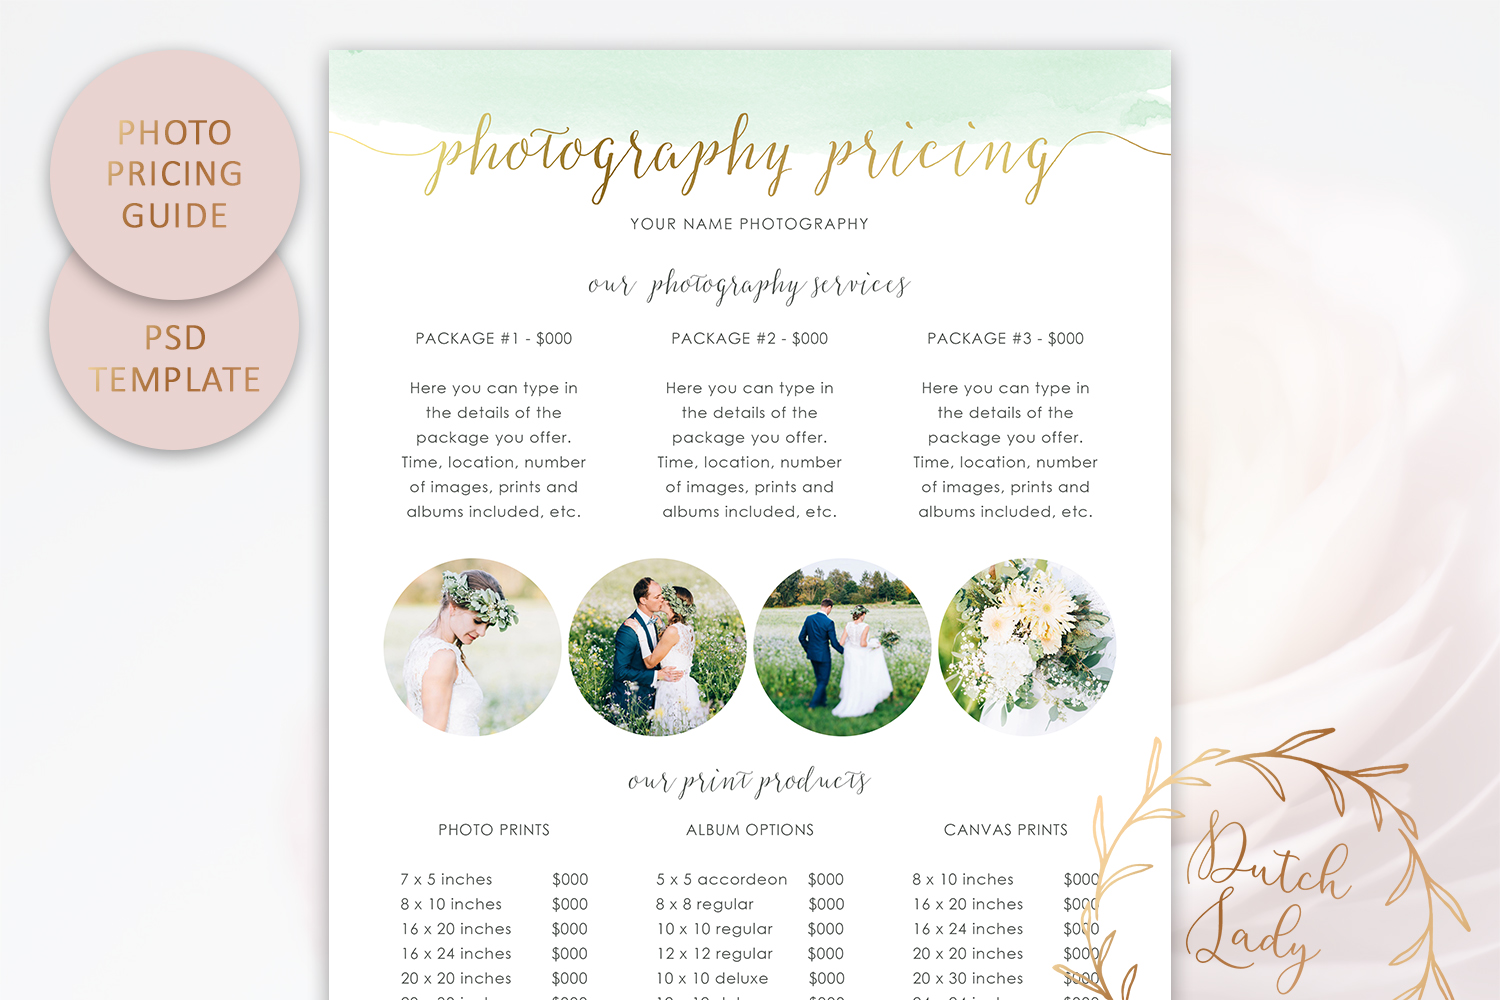 PSD Photography Pricing Guide Template Design #9 example image 2